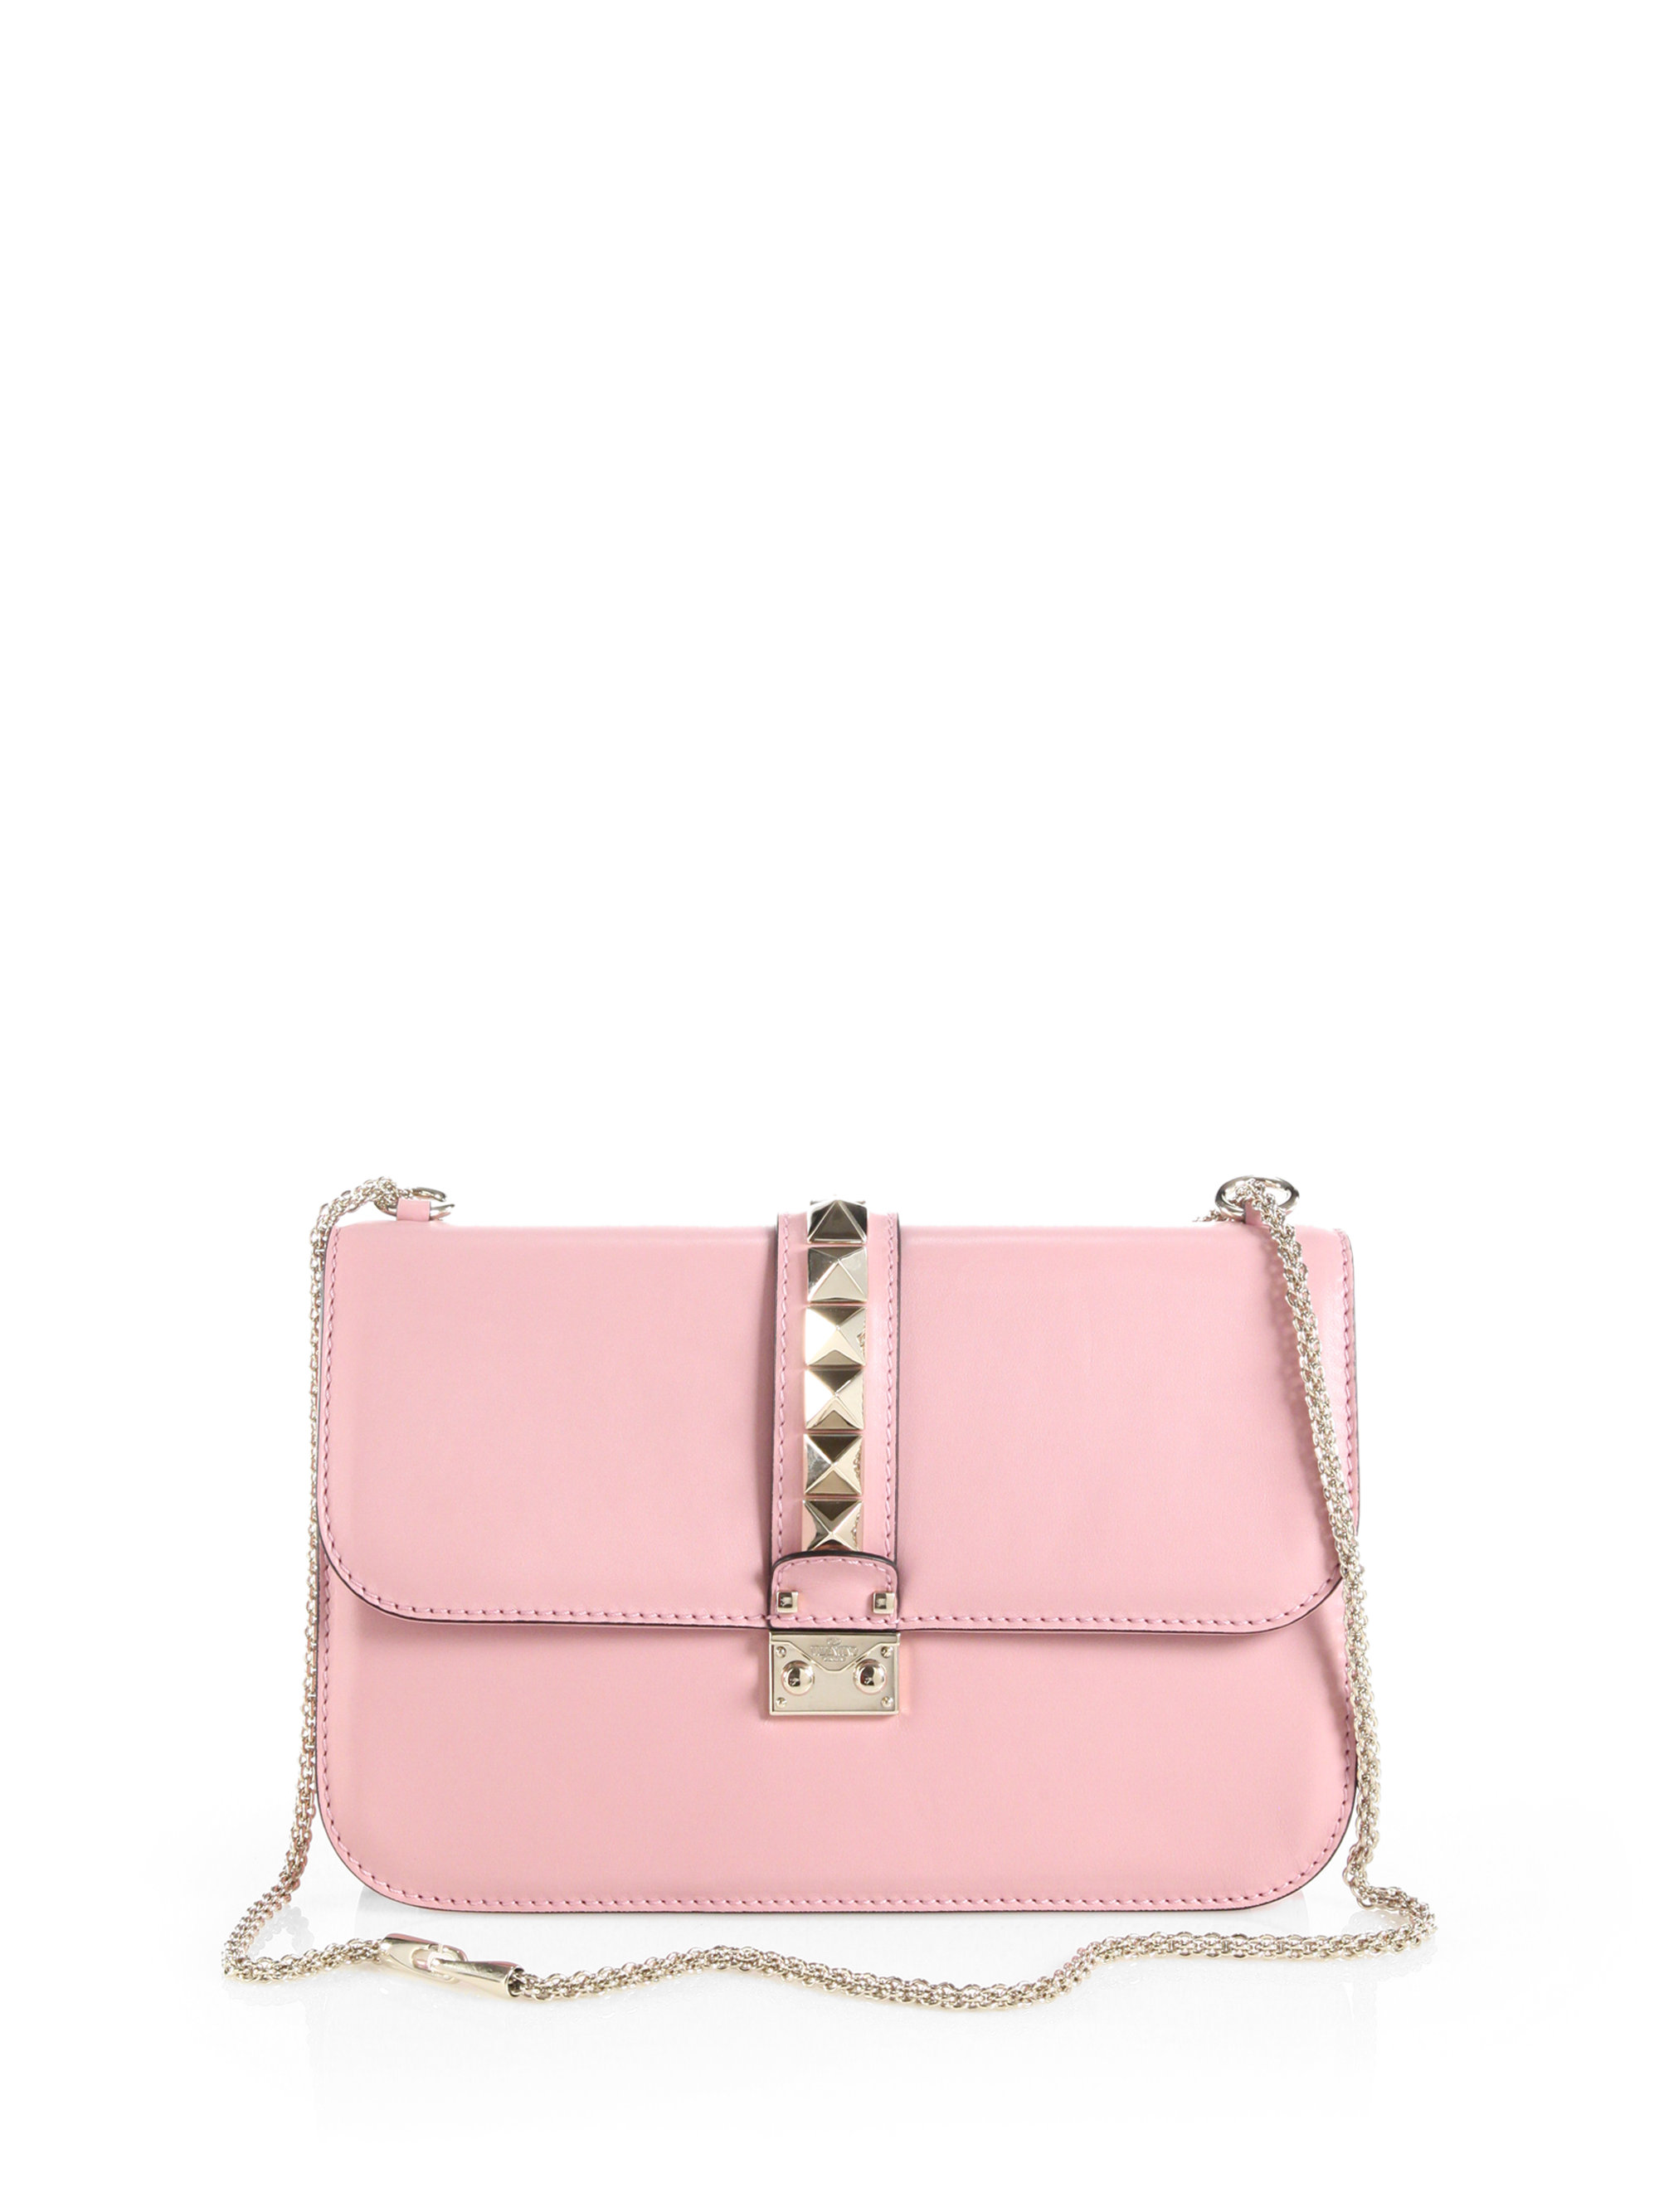 Valentino Rocklock Medium Shoulder Bag in Pink | Lyst